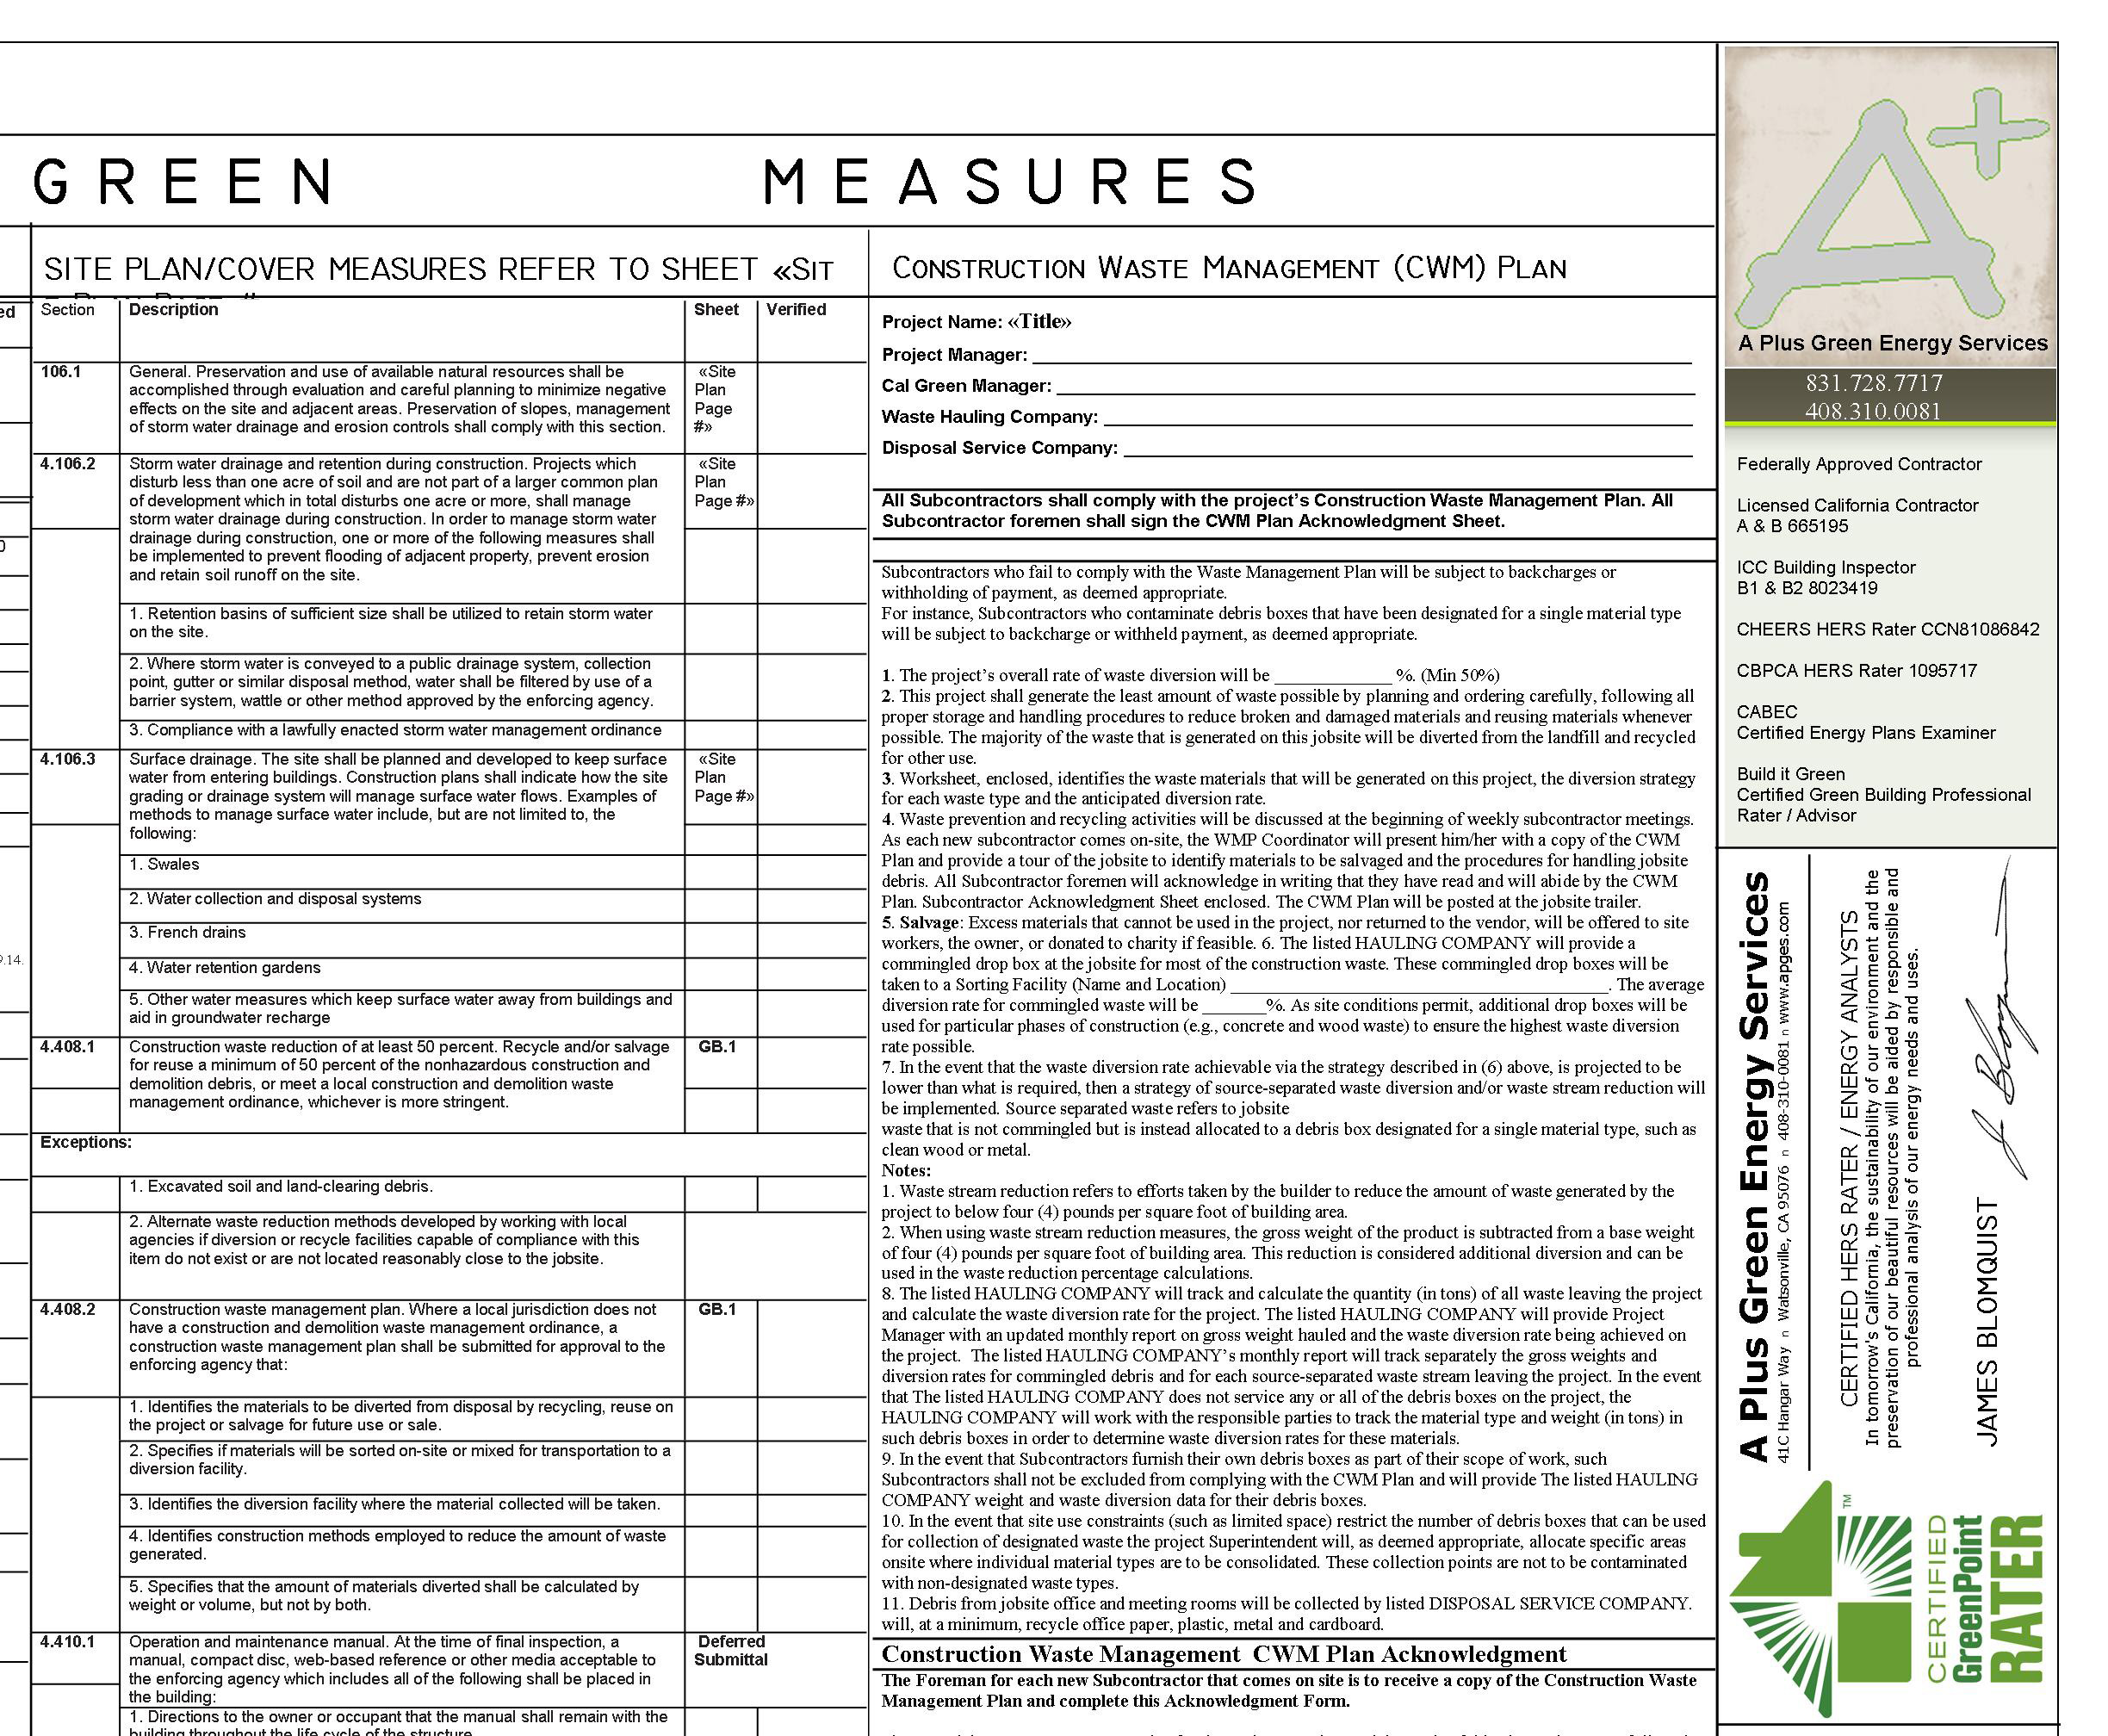 Cal Green Sheet